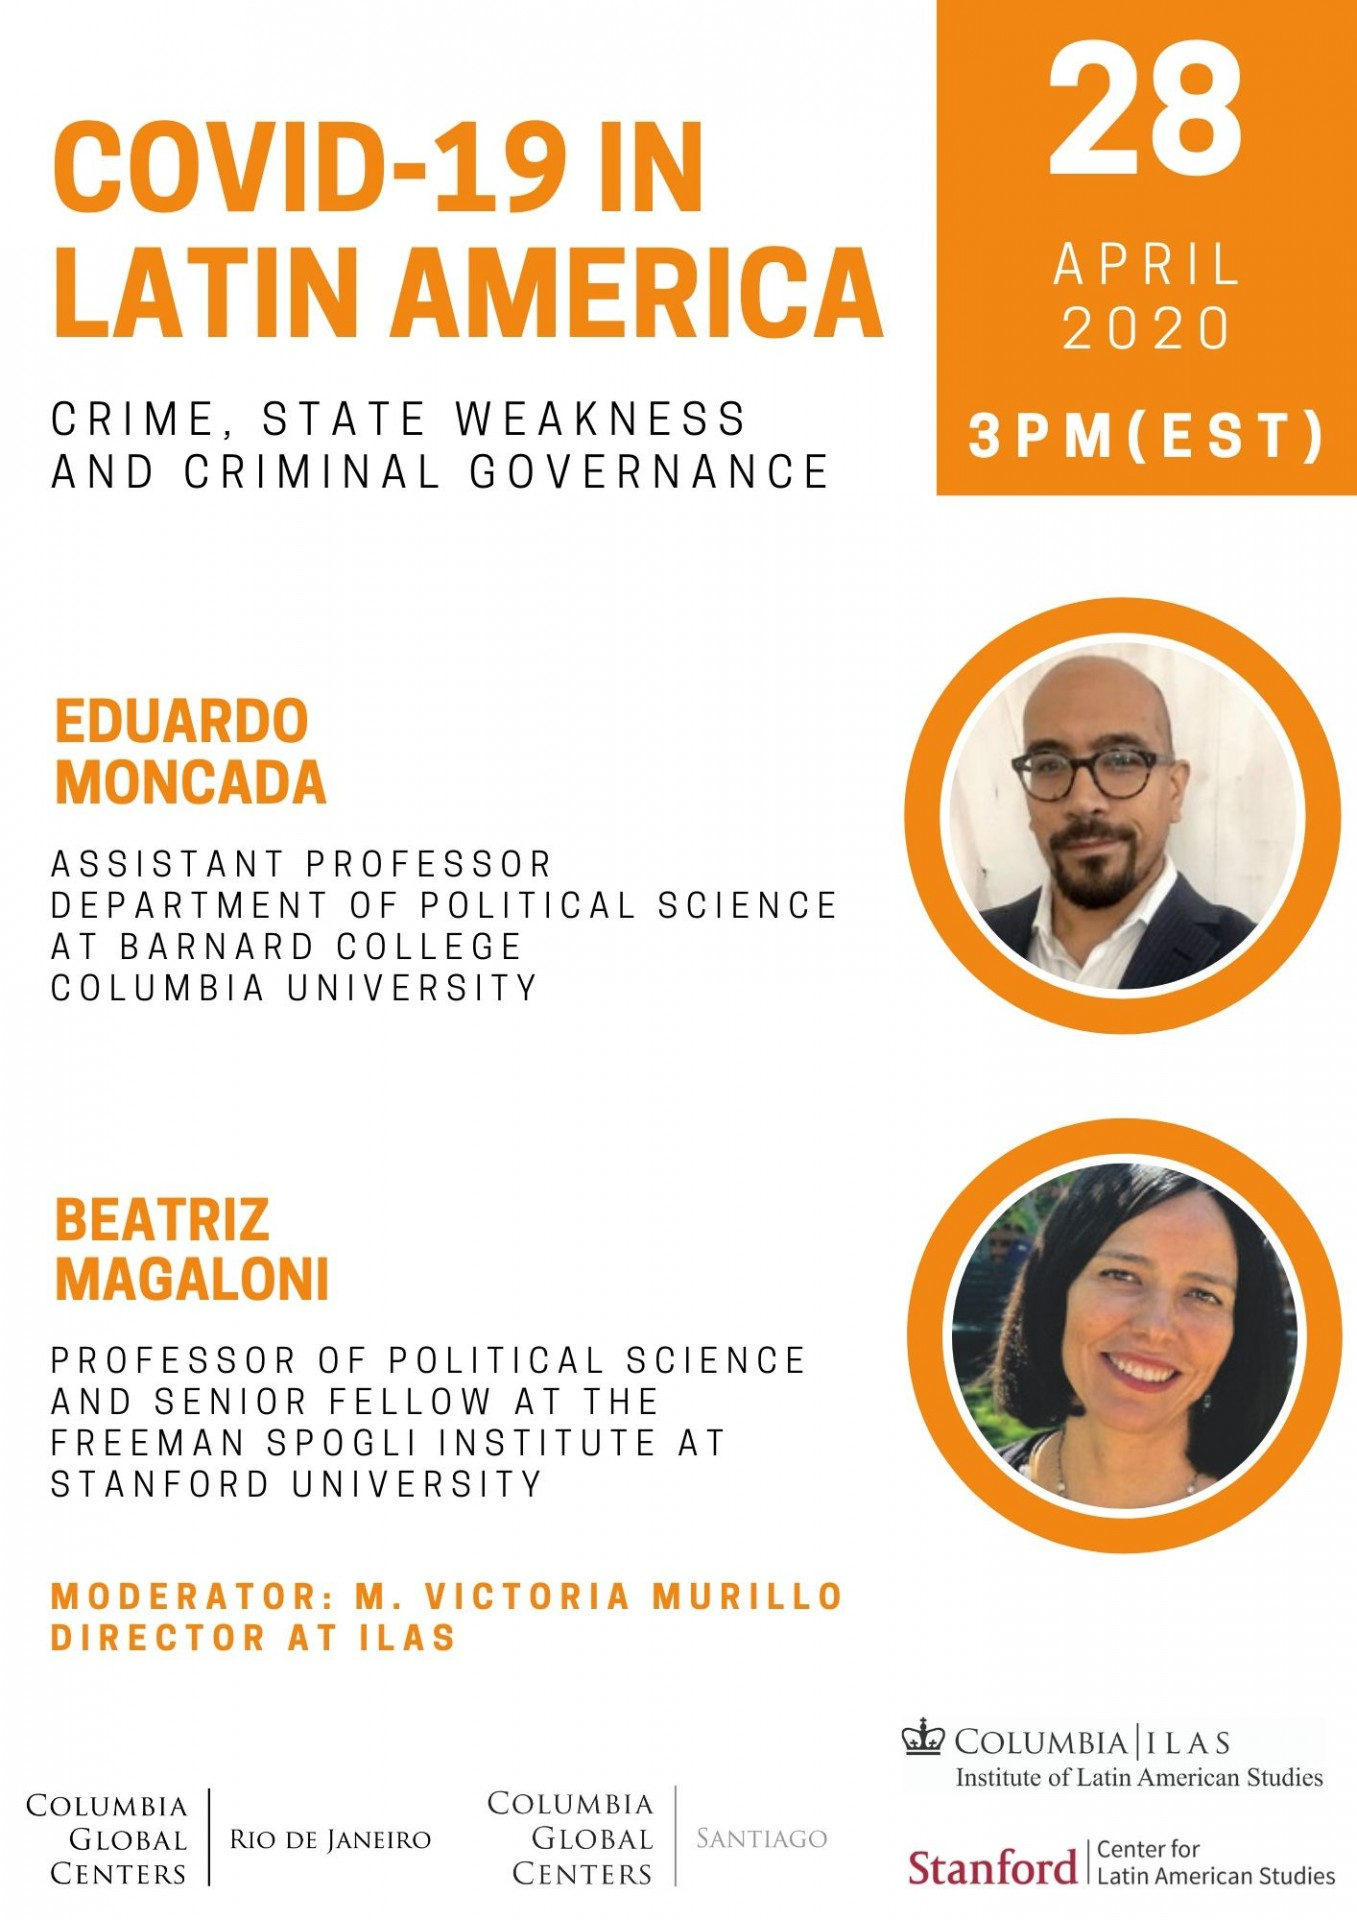 COVID-19 in Latin America: Crime, State Weakness and Governance in America